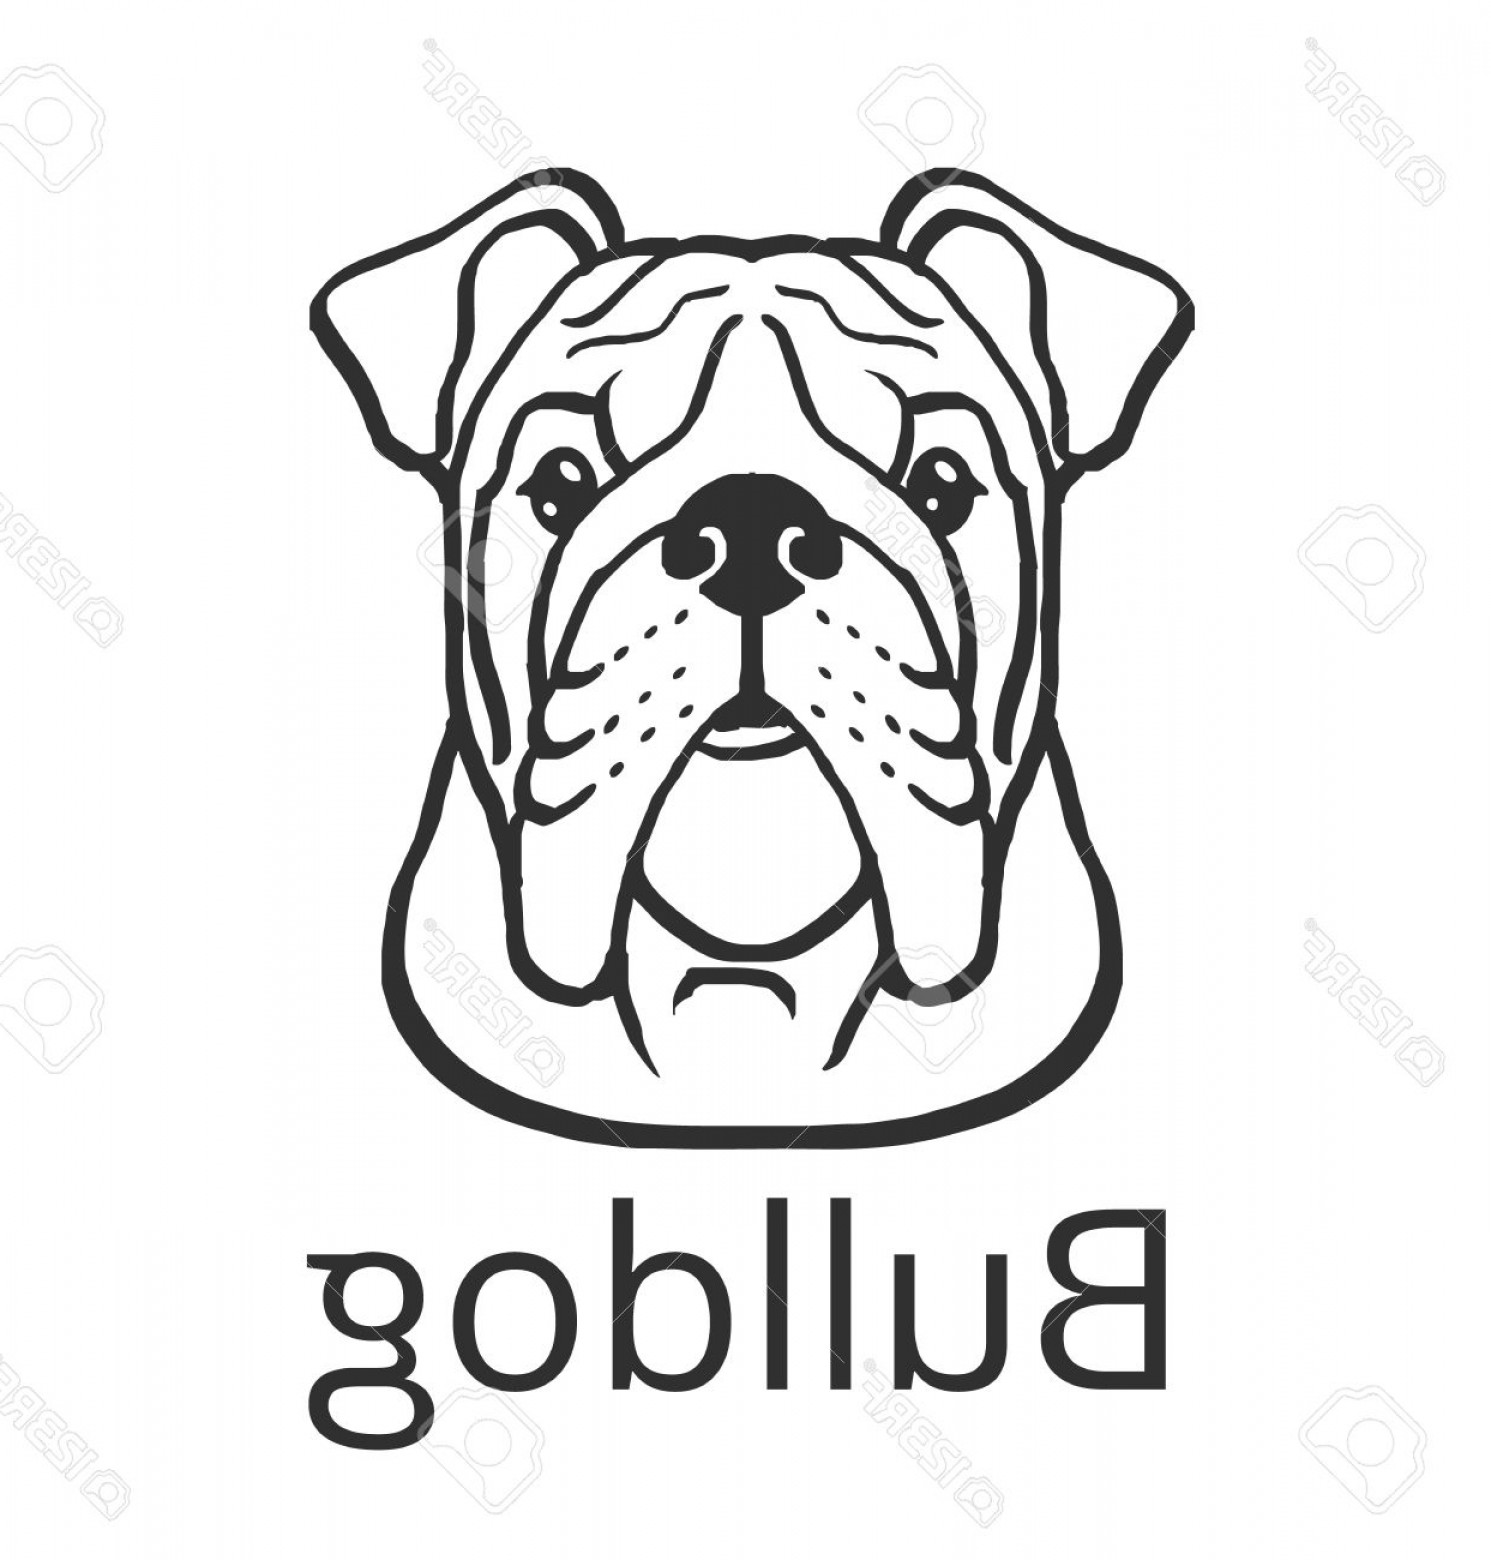 1491x1560 Photostock Vector Bulldog Black Vector Icon Illustration Orangiausa